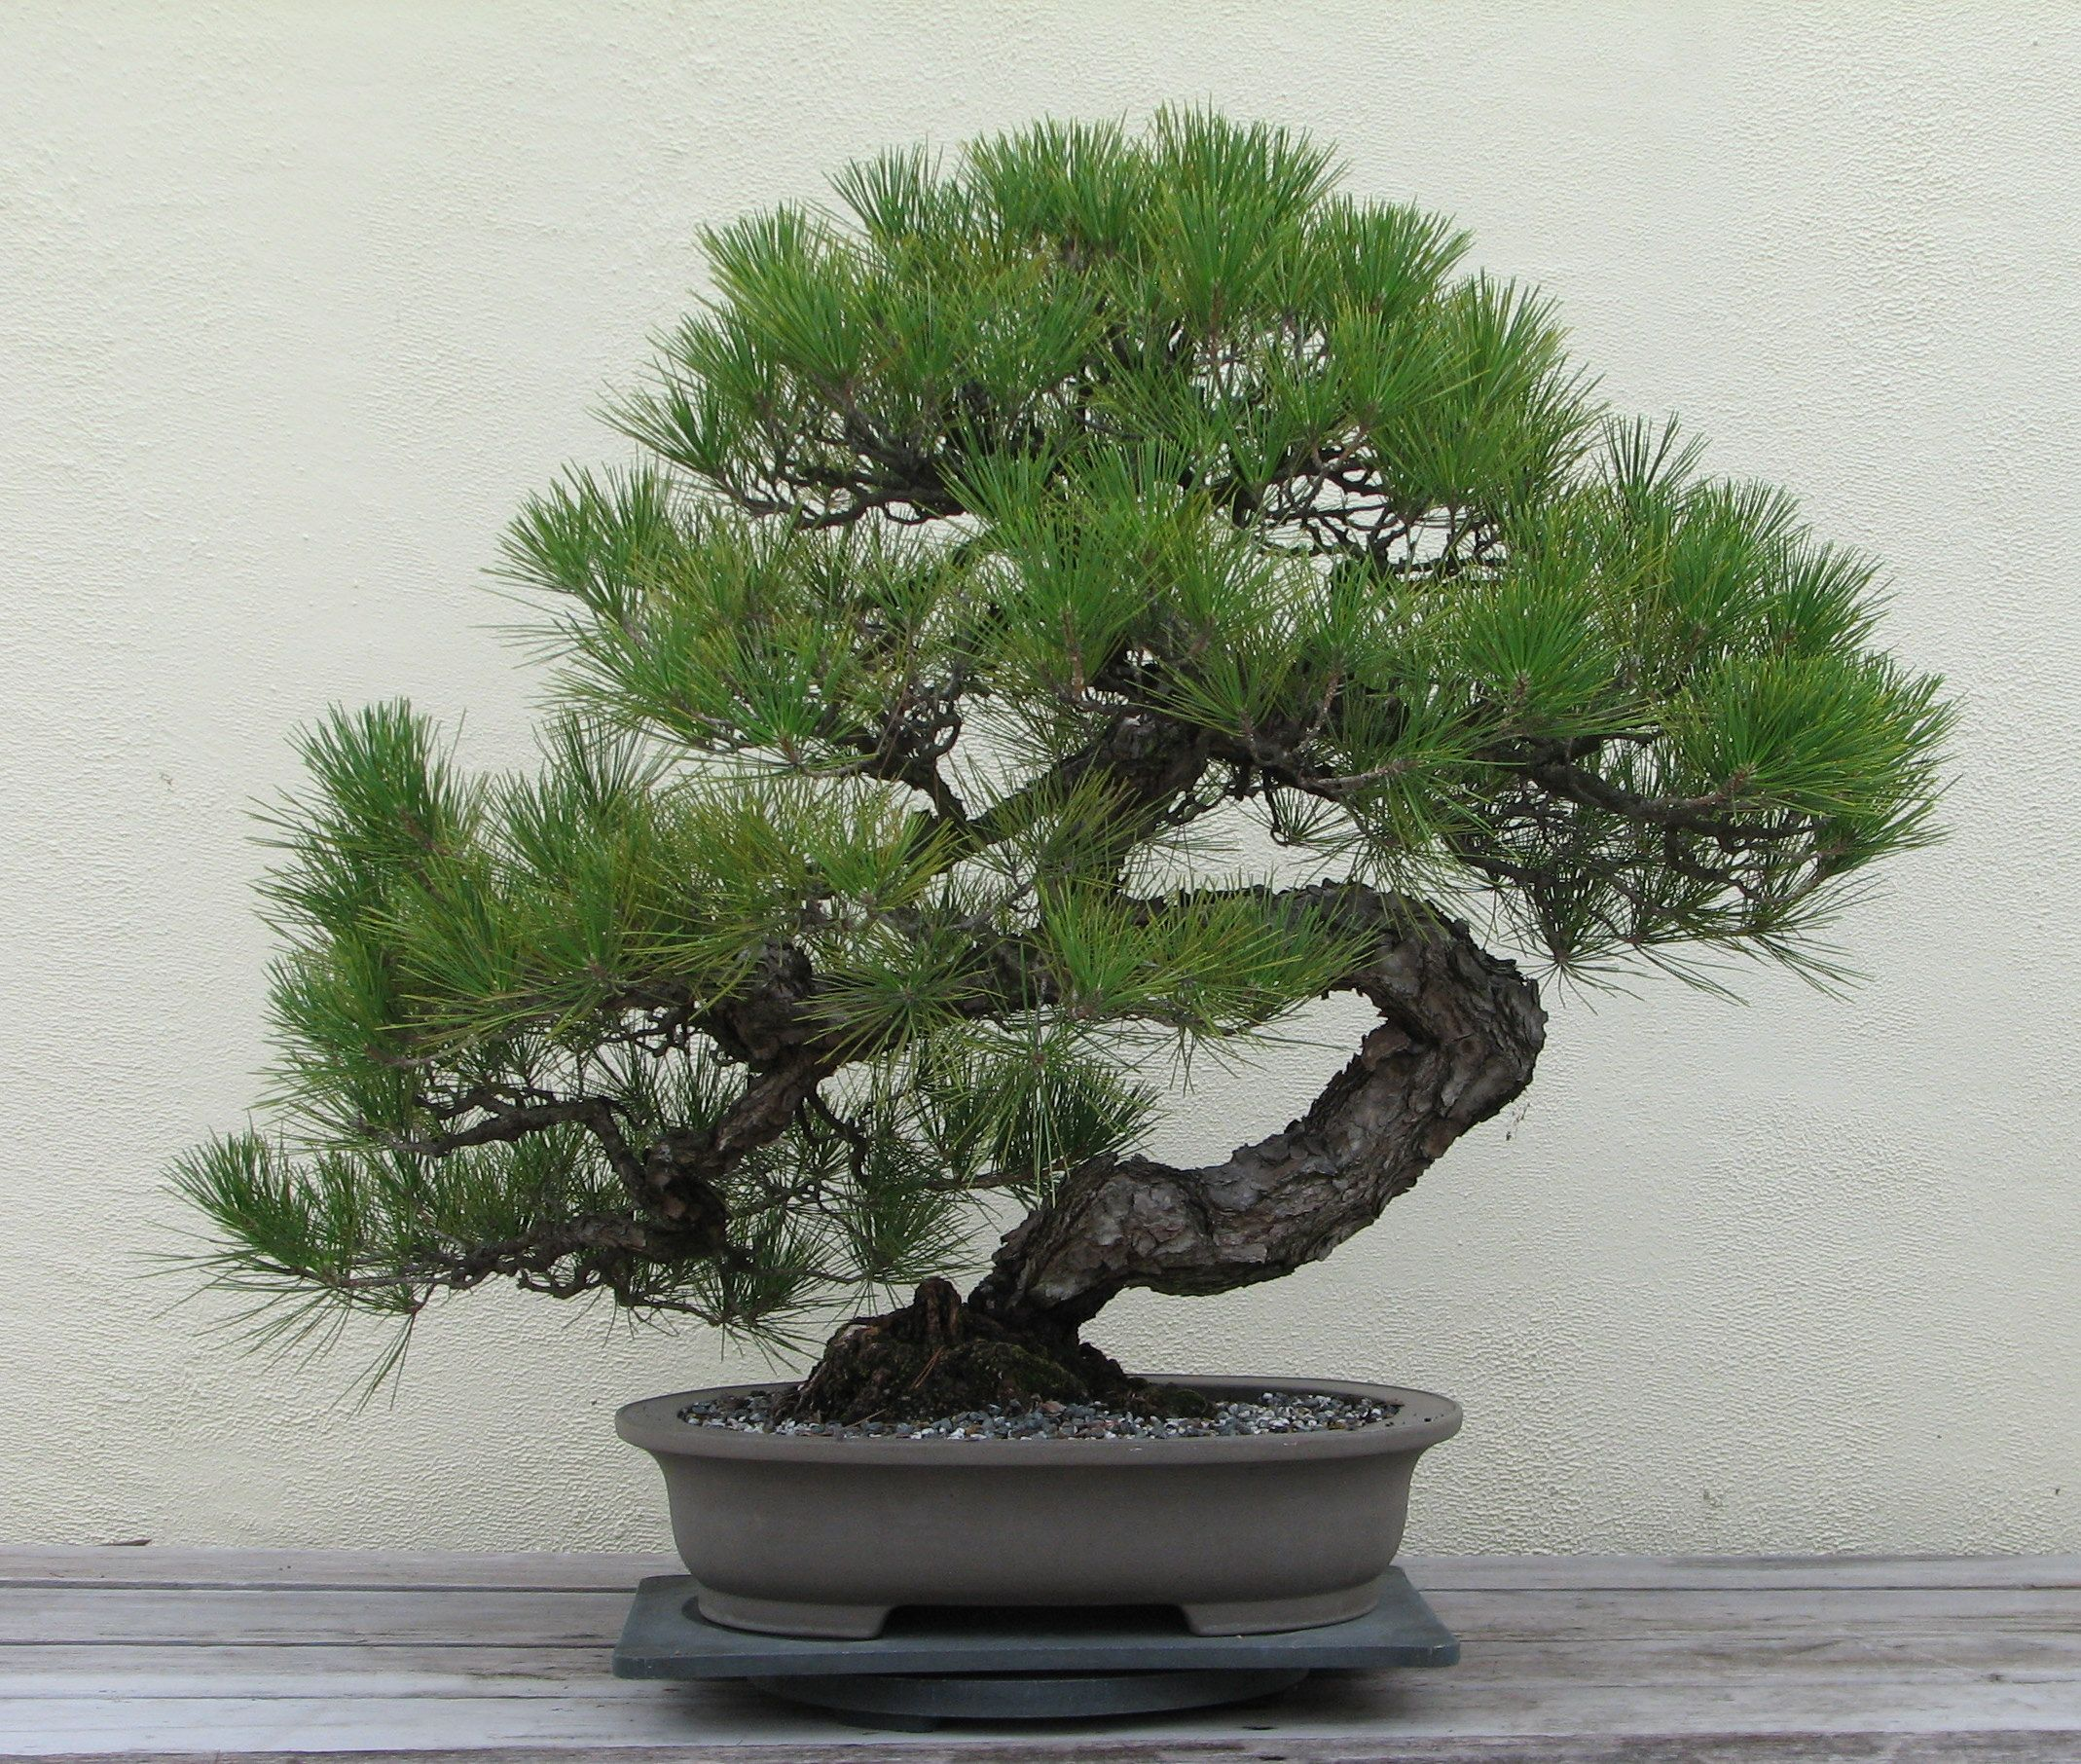 Japanese black pine tree - Pinus T. - bonsai plant ...